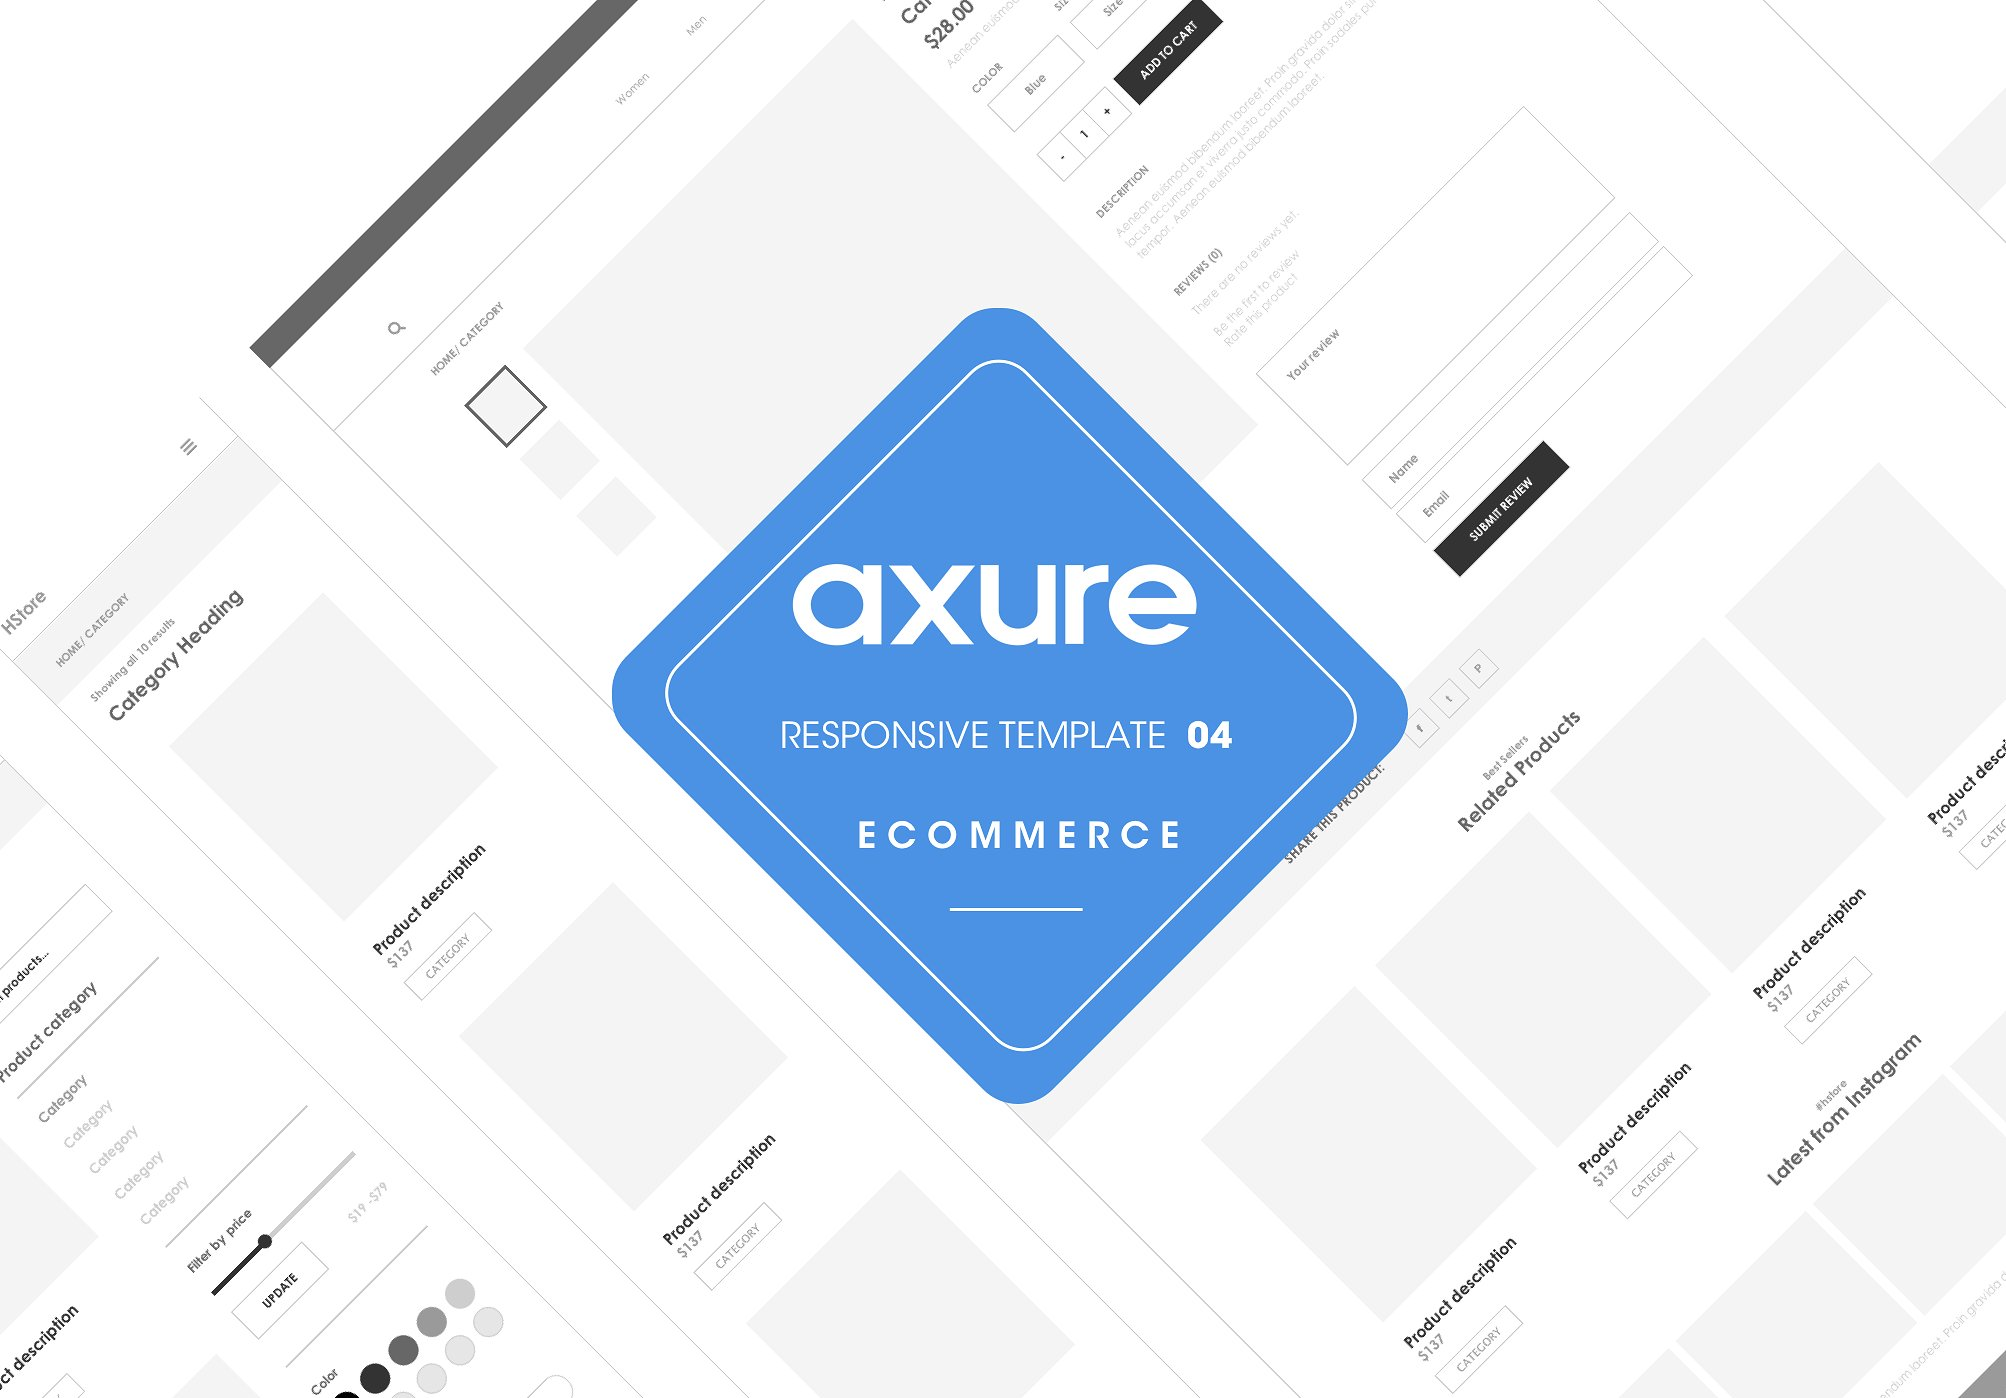 Axure axure responsive ecommerce template4 for Axure tablet template